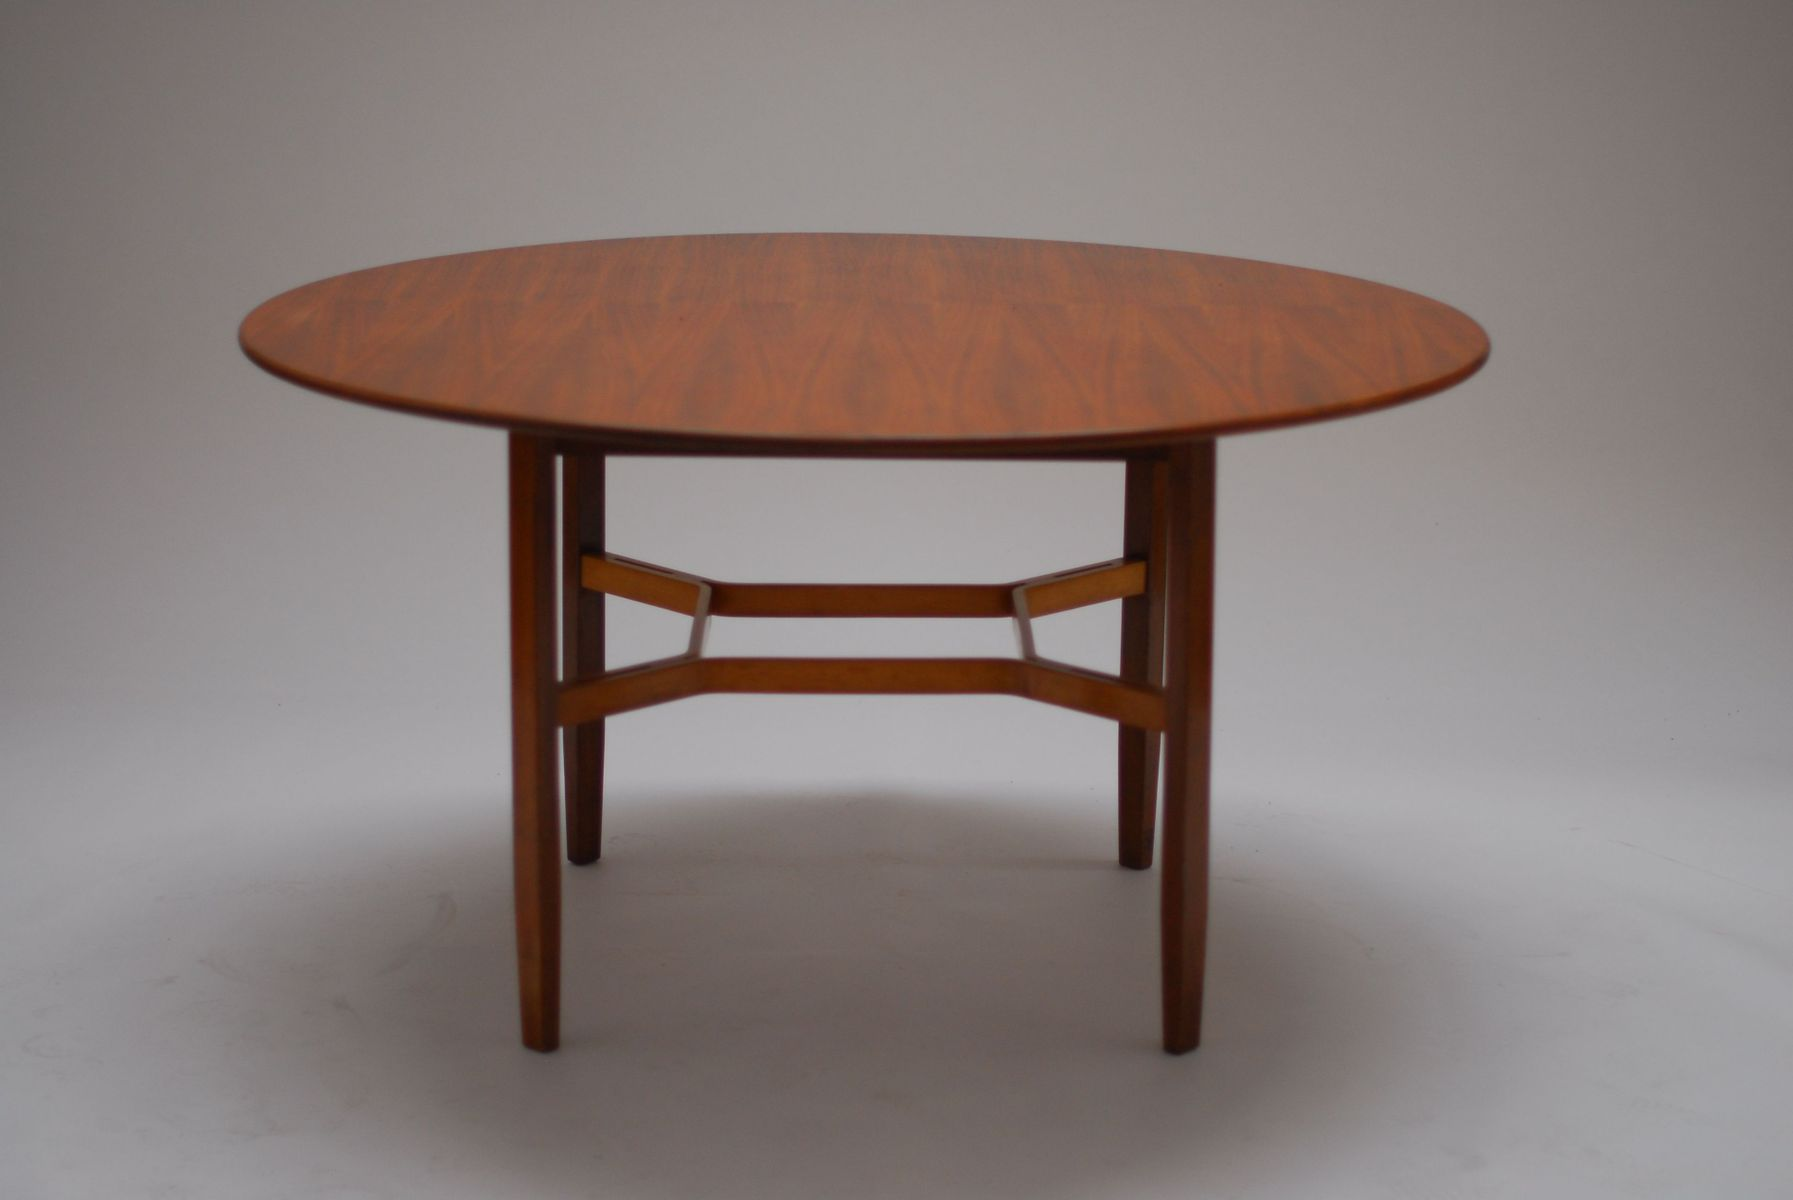 Walnut Dining Table By Lewis Butler For Knoll, 1955